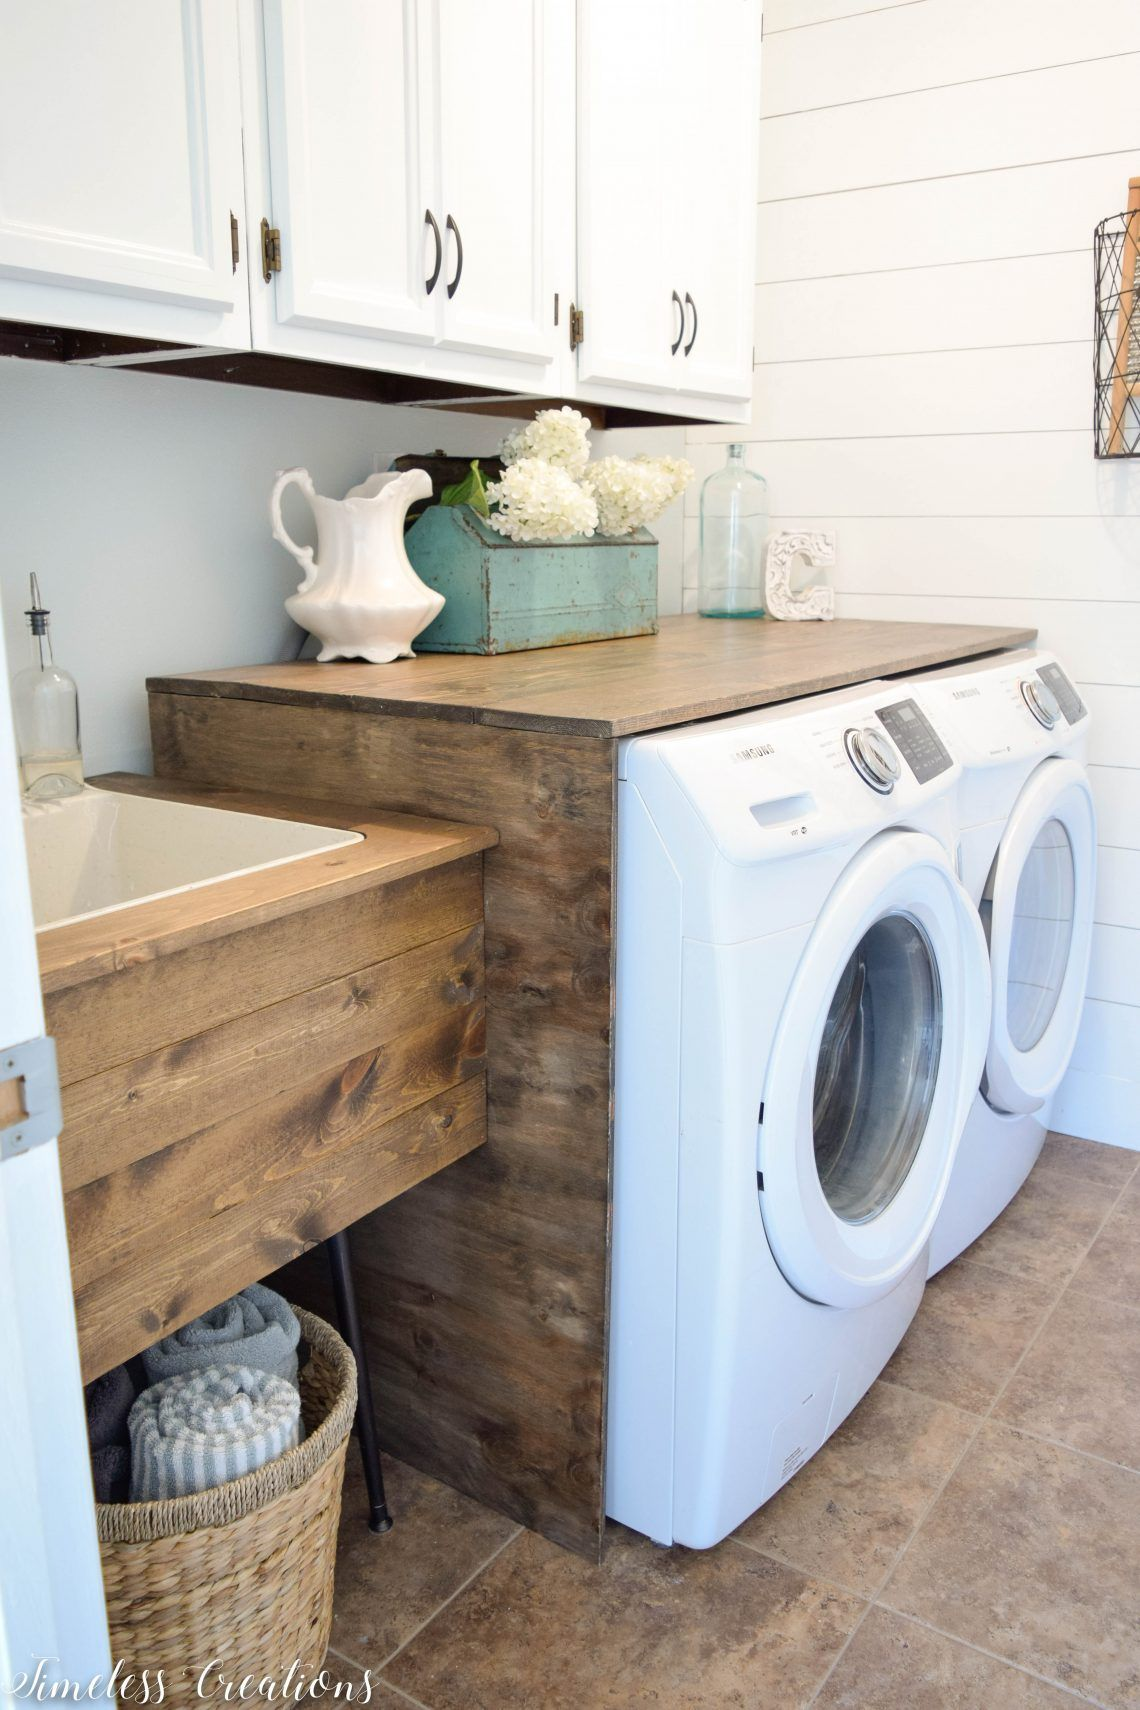 Diy Utility Sink Makeover Laundry Room Diy Laundry Room Design